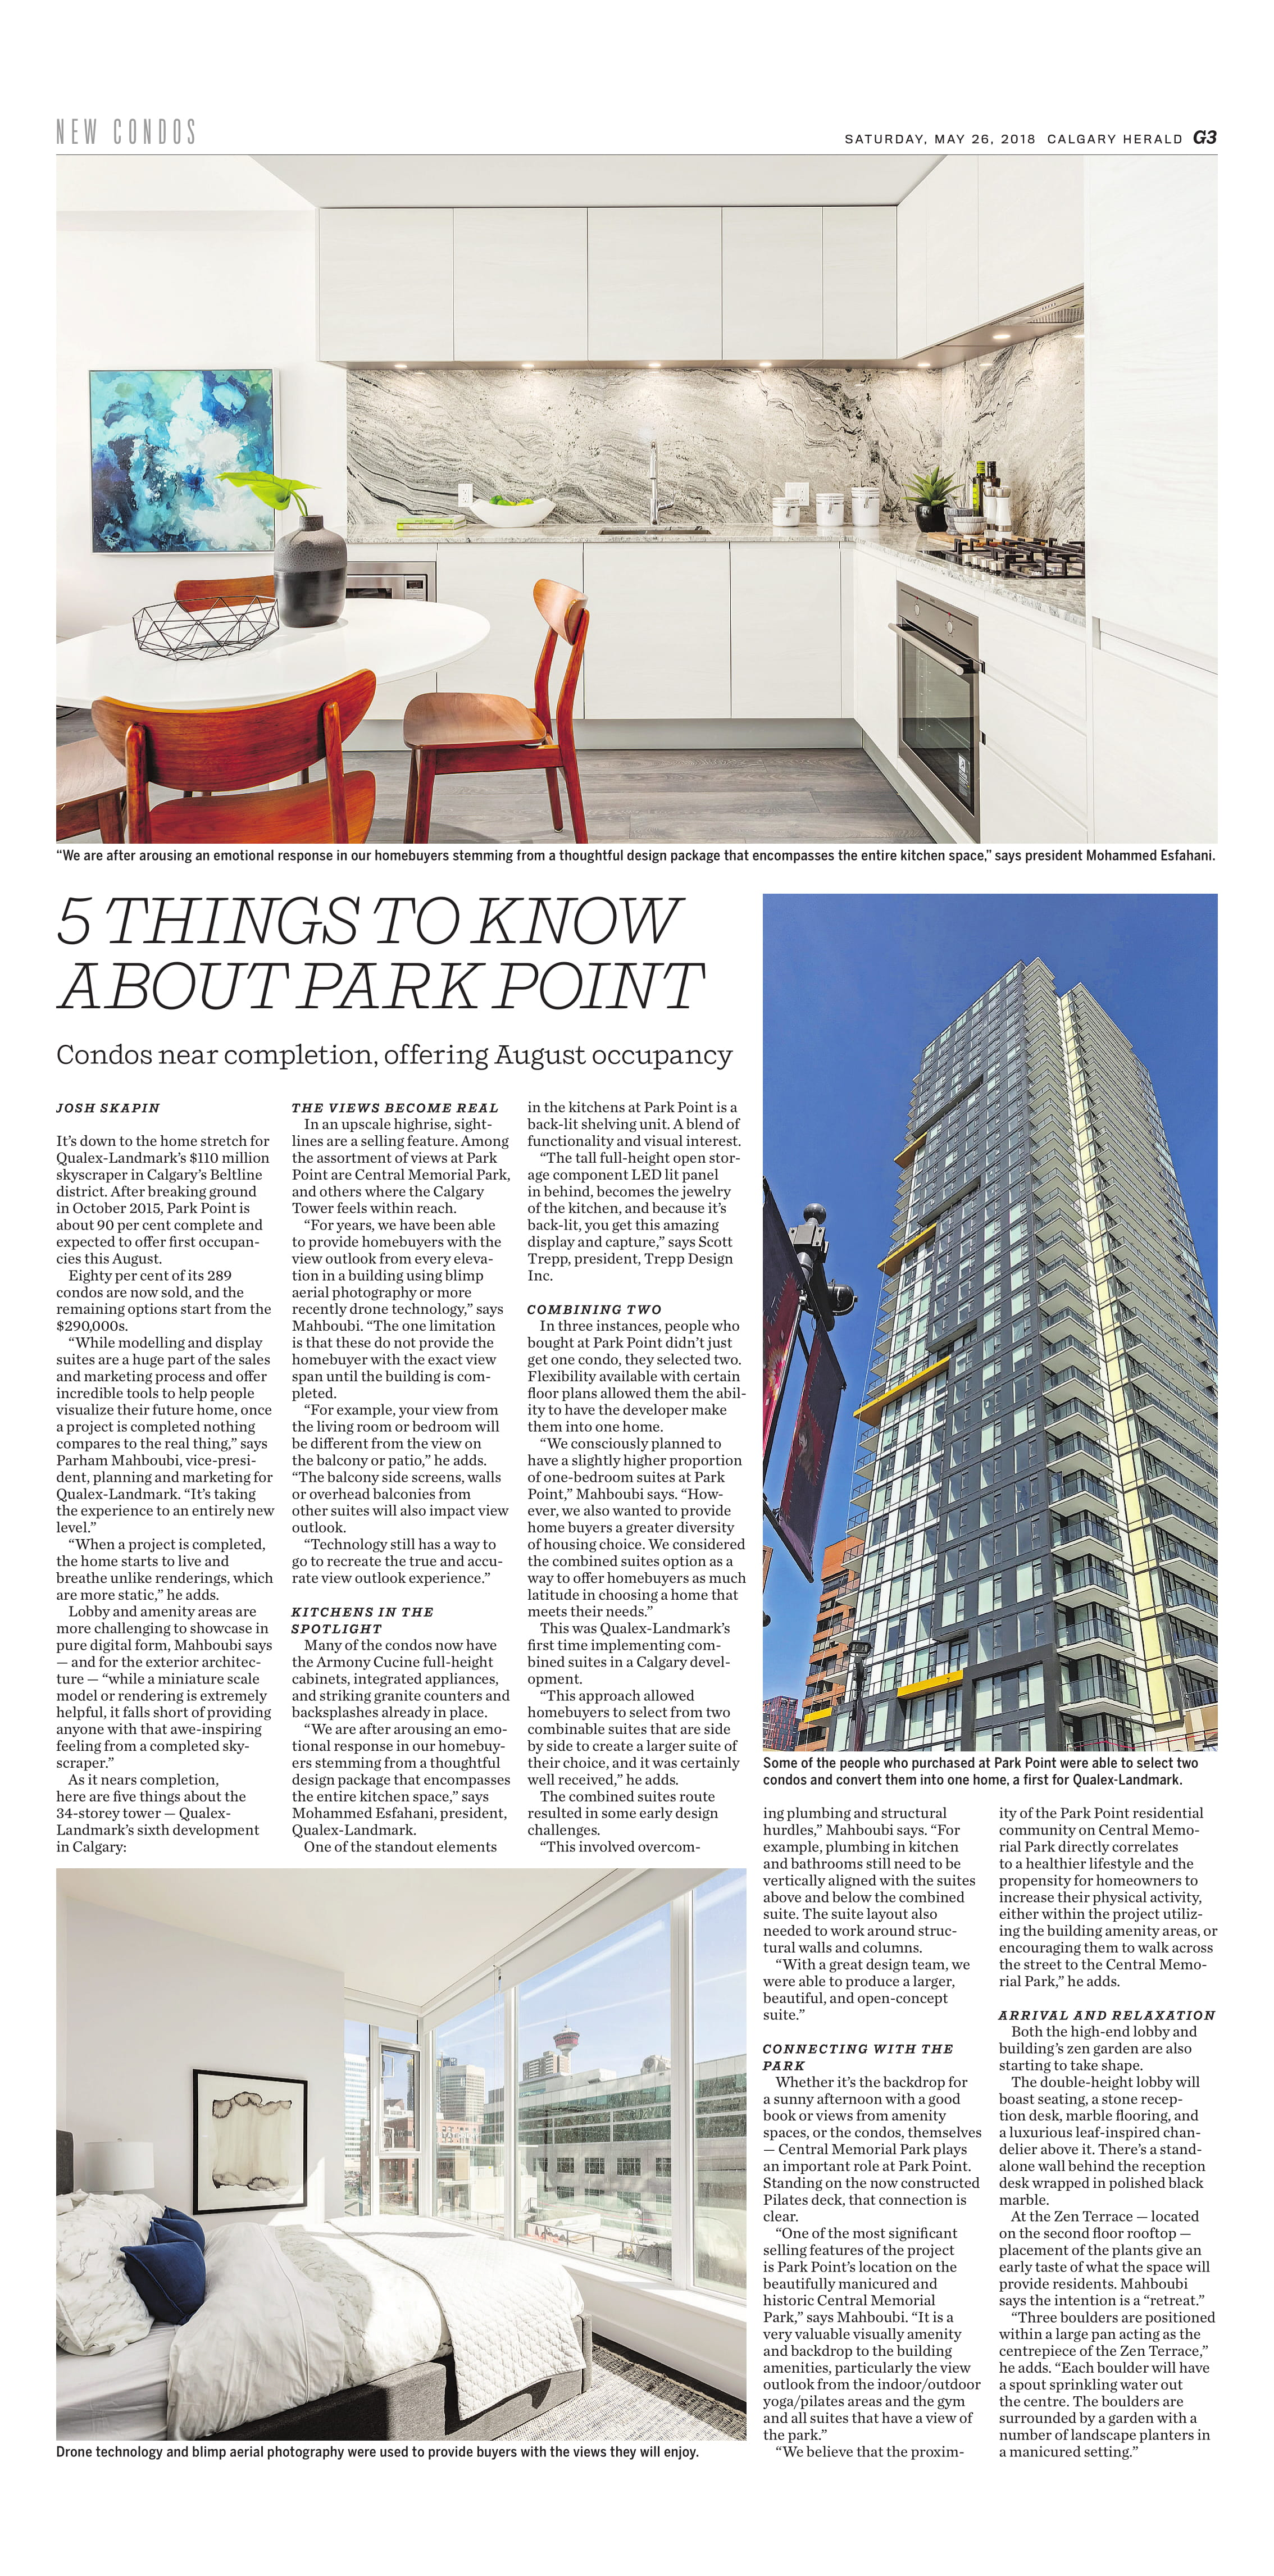 Calgary Herald on Park Point Beltline Condos